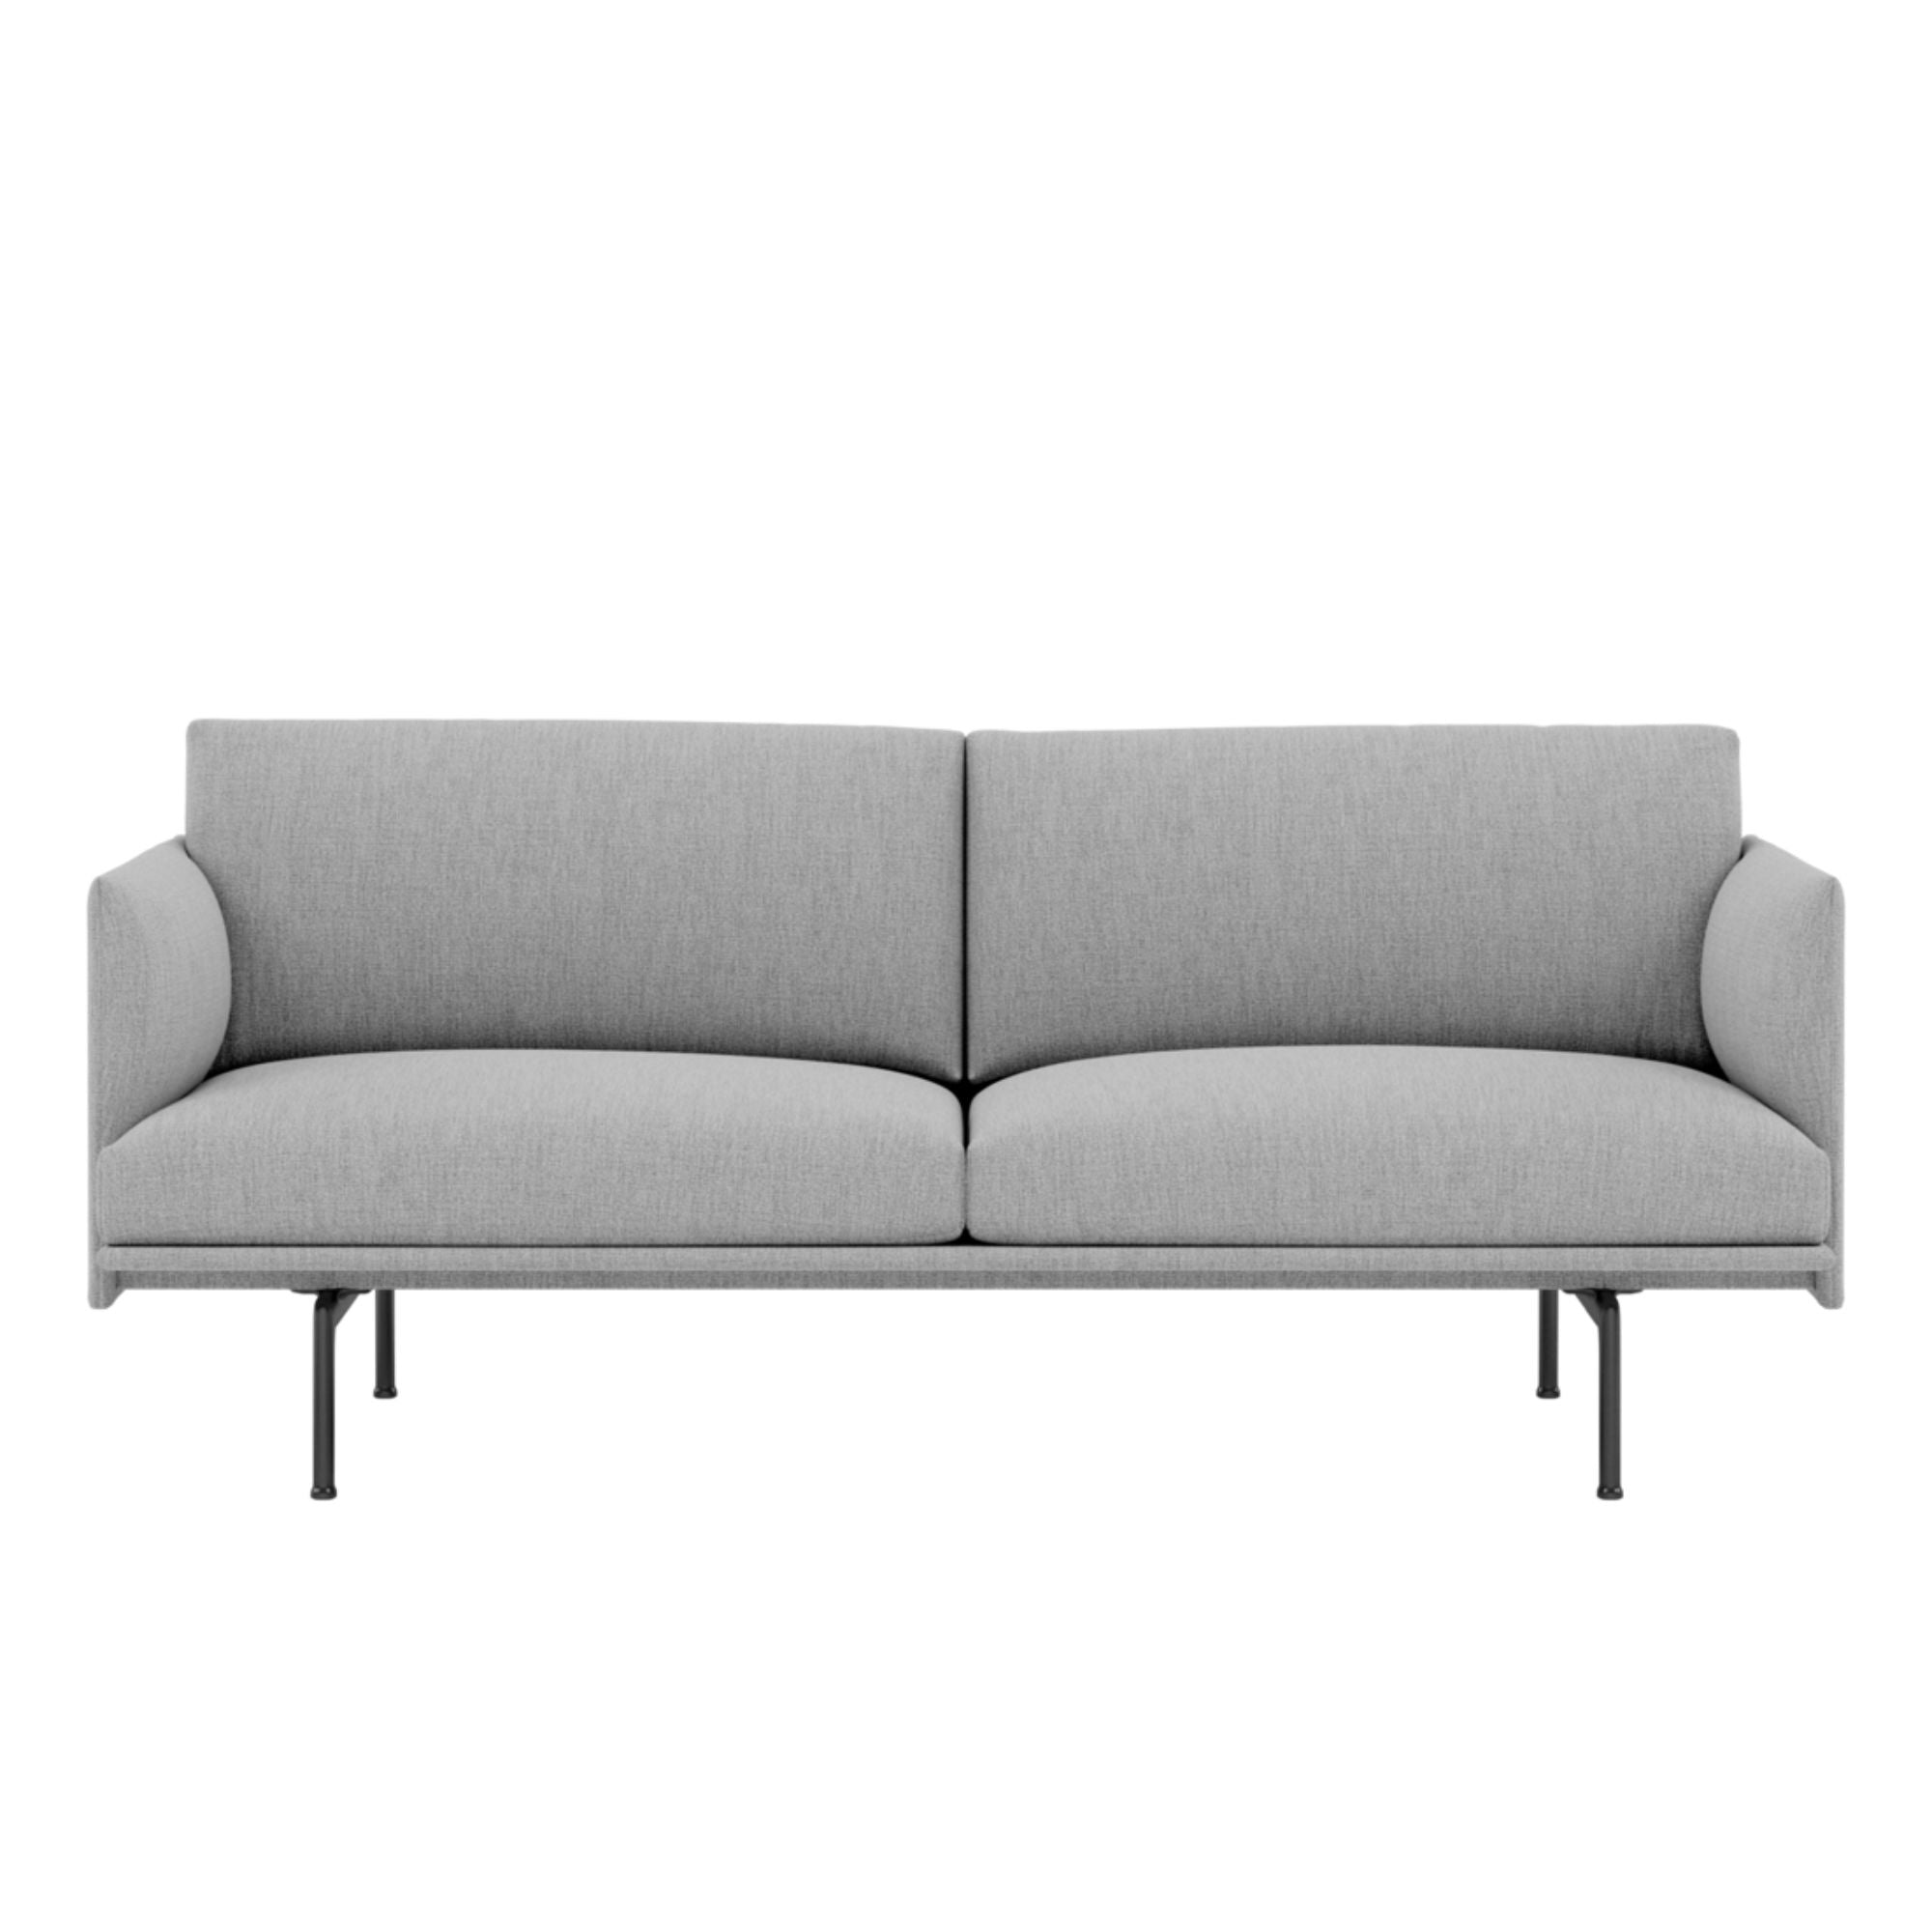 Muuto Outline Studio Sofa 170cm Black Base , Fiord 151